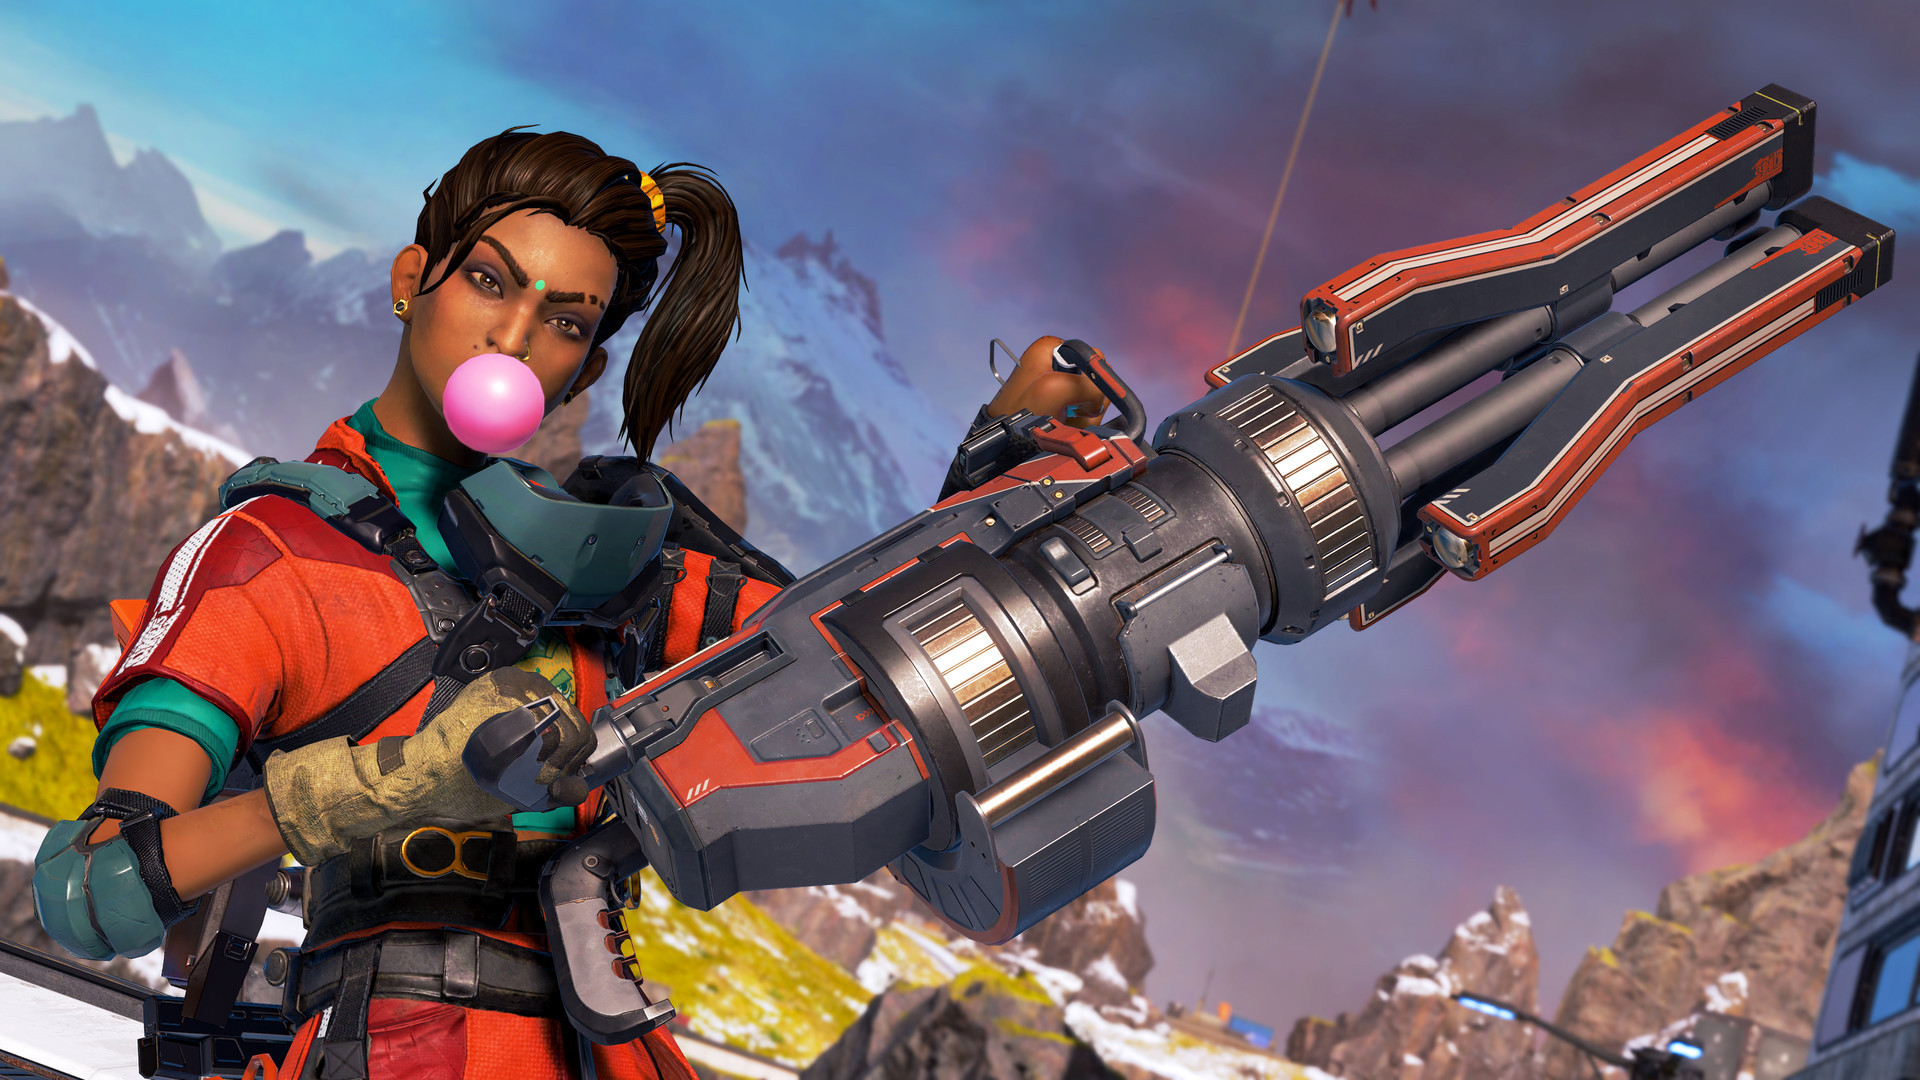 Apex Legends will let you play solo with no-fill matchmaking